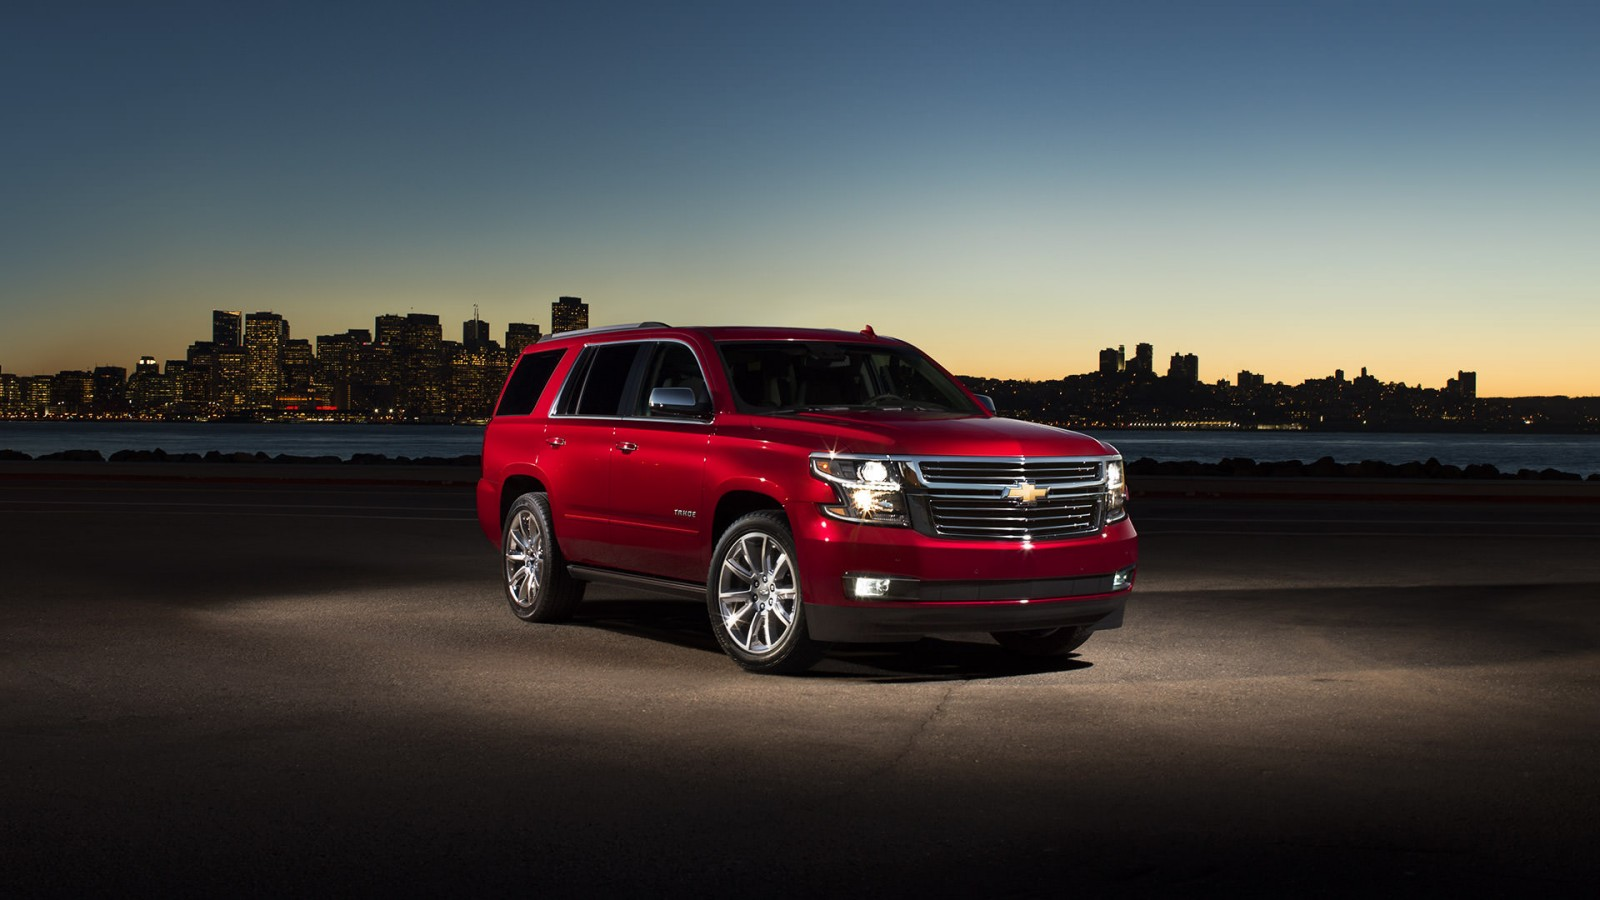 2017 Chevrolet Tahoe for Sale near Manassas, VA